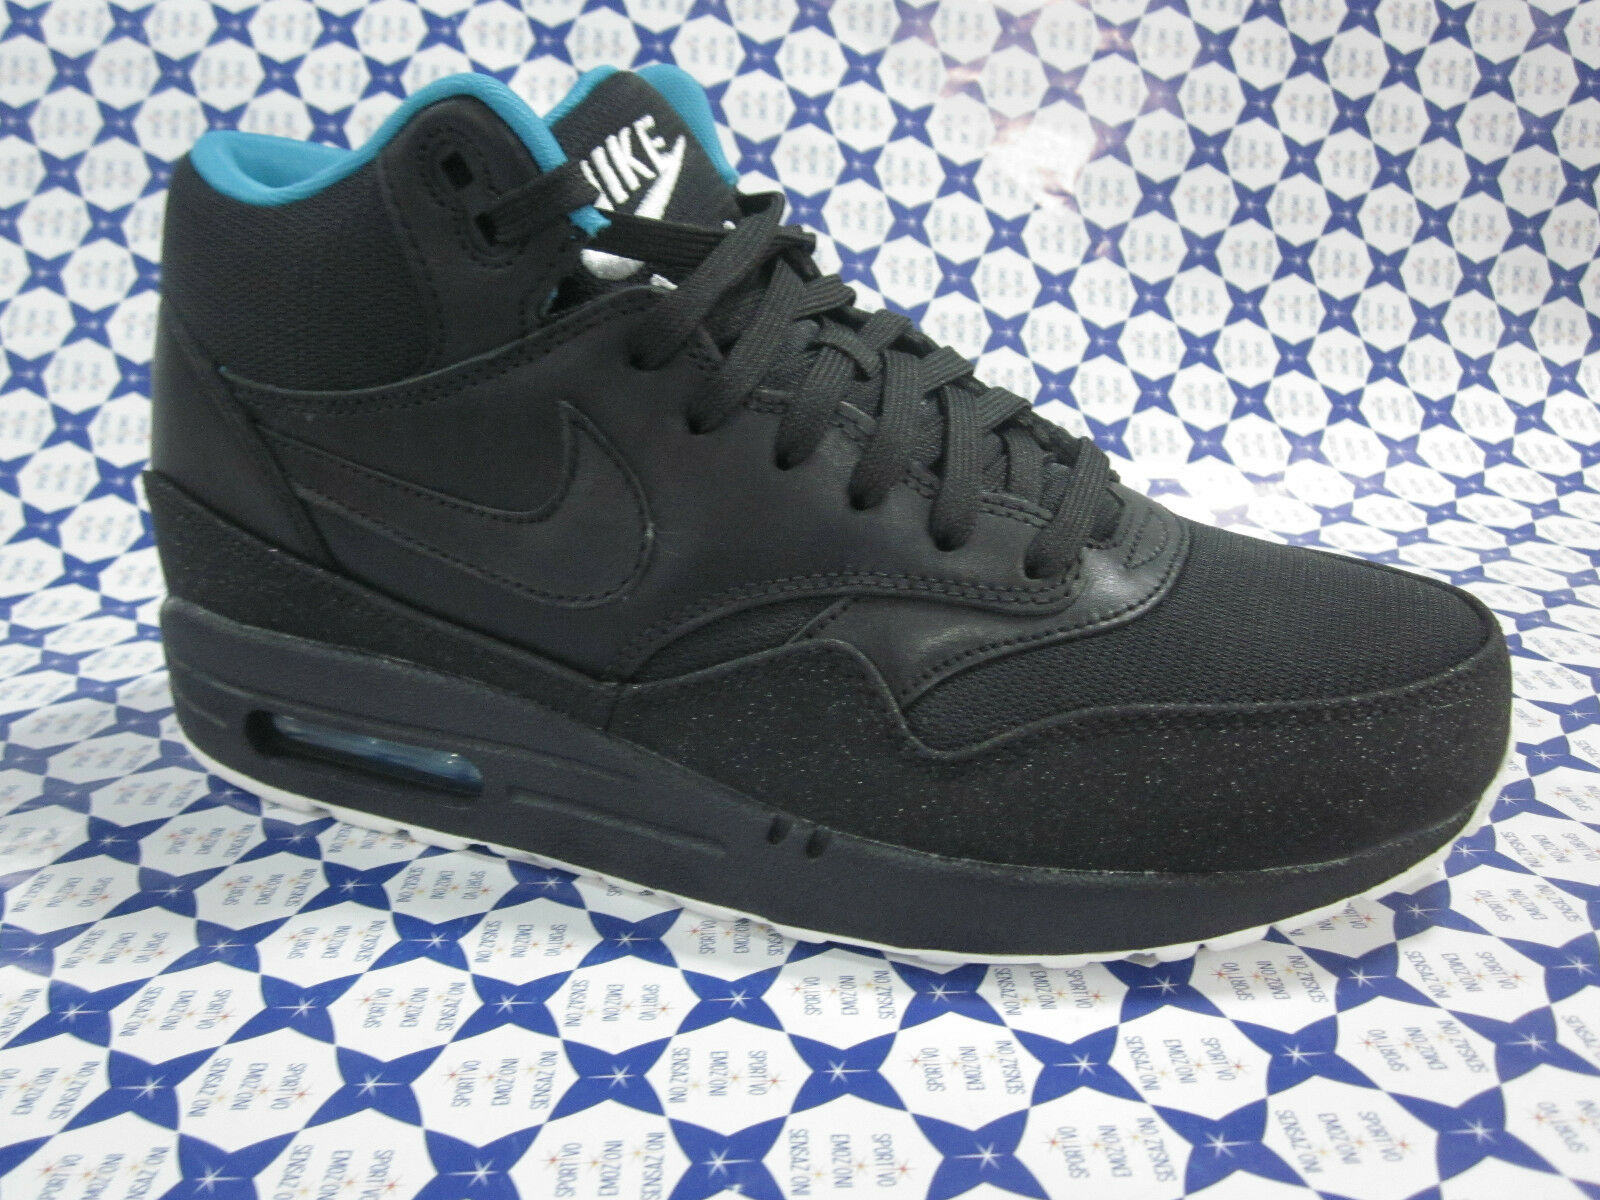 Scarpa Nike Air Max 1 Mid - black 685192